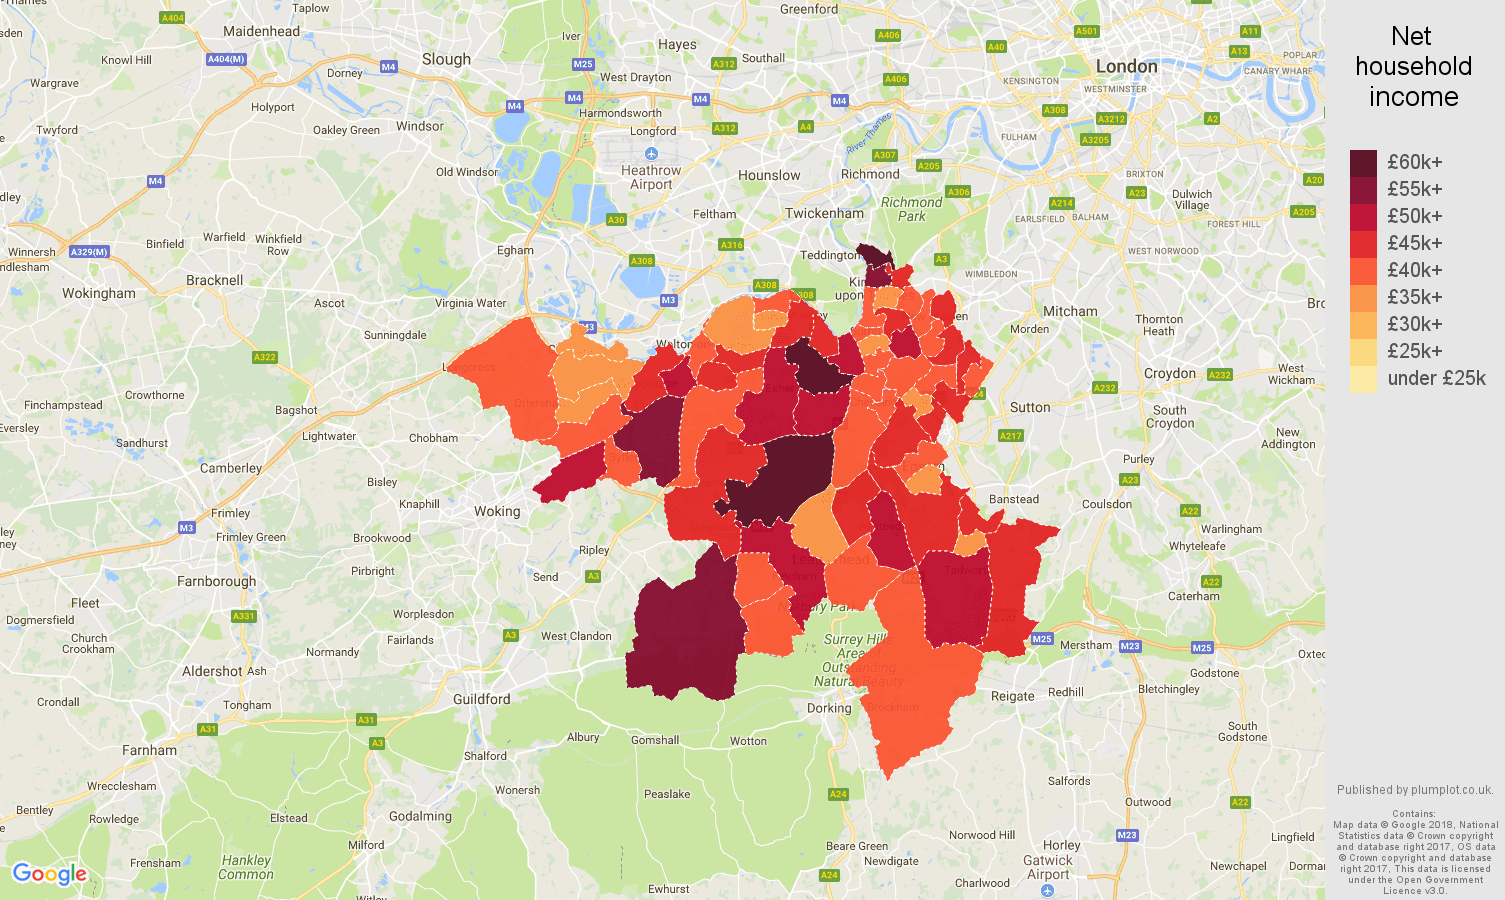 Kingston upon Thames net household income map